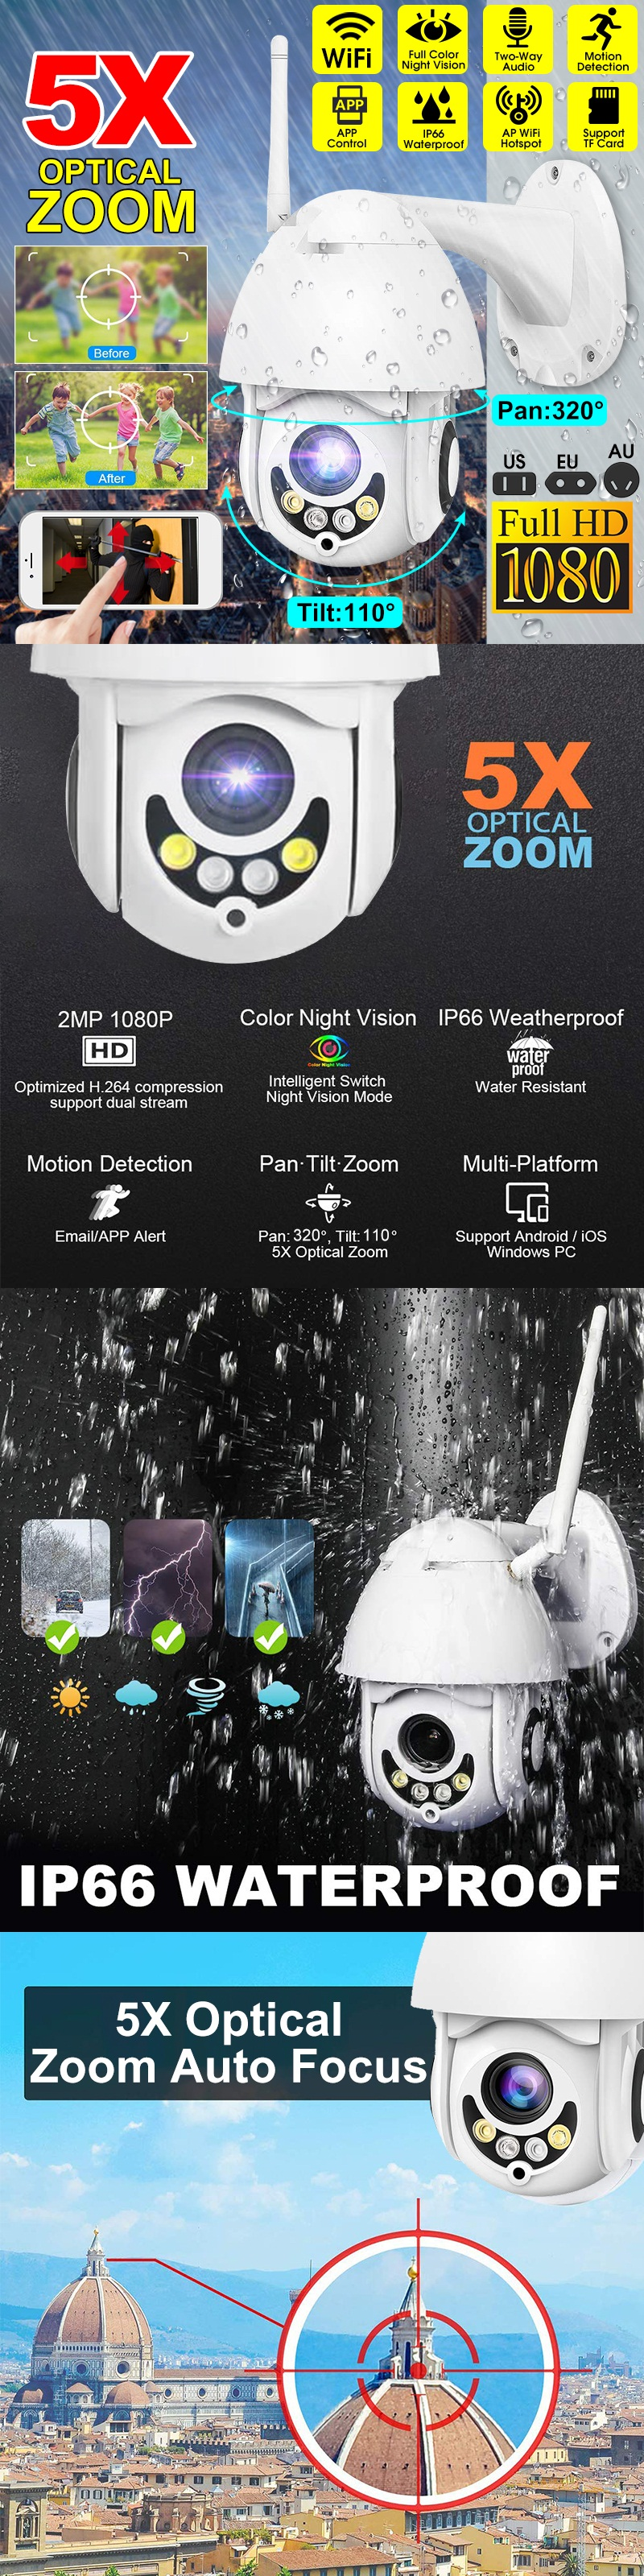 Bakeey 1080P HD Smart Wifi Speed Dome Camera Night Vision 360 Degree Auto Tracking 5x Zoom IP66 Waterproof Outdoor Surveillance CCTV Monitor